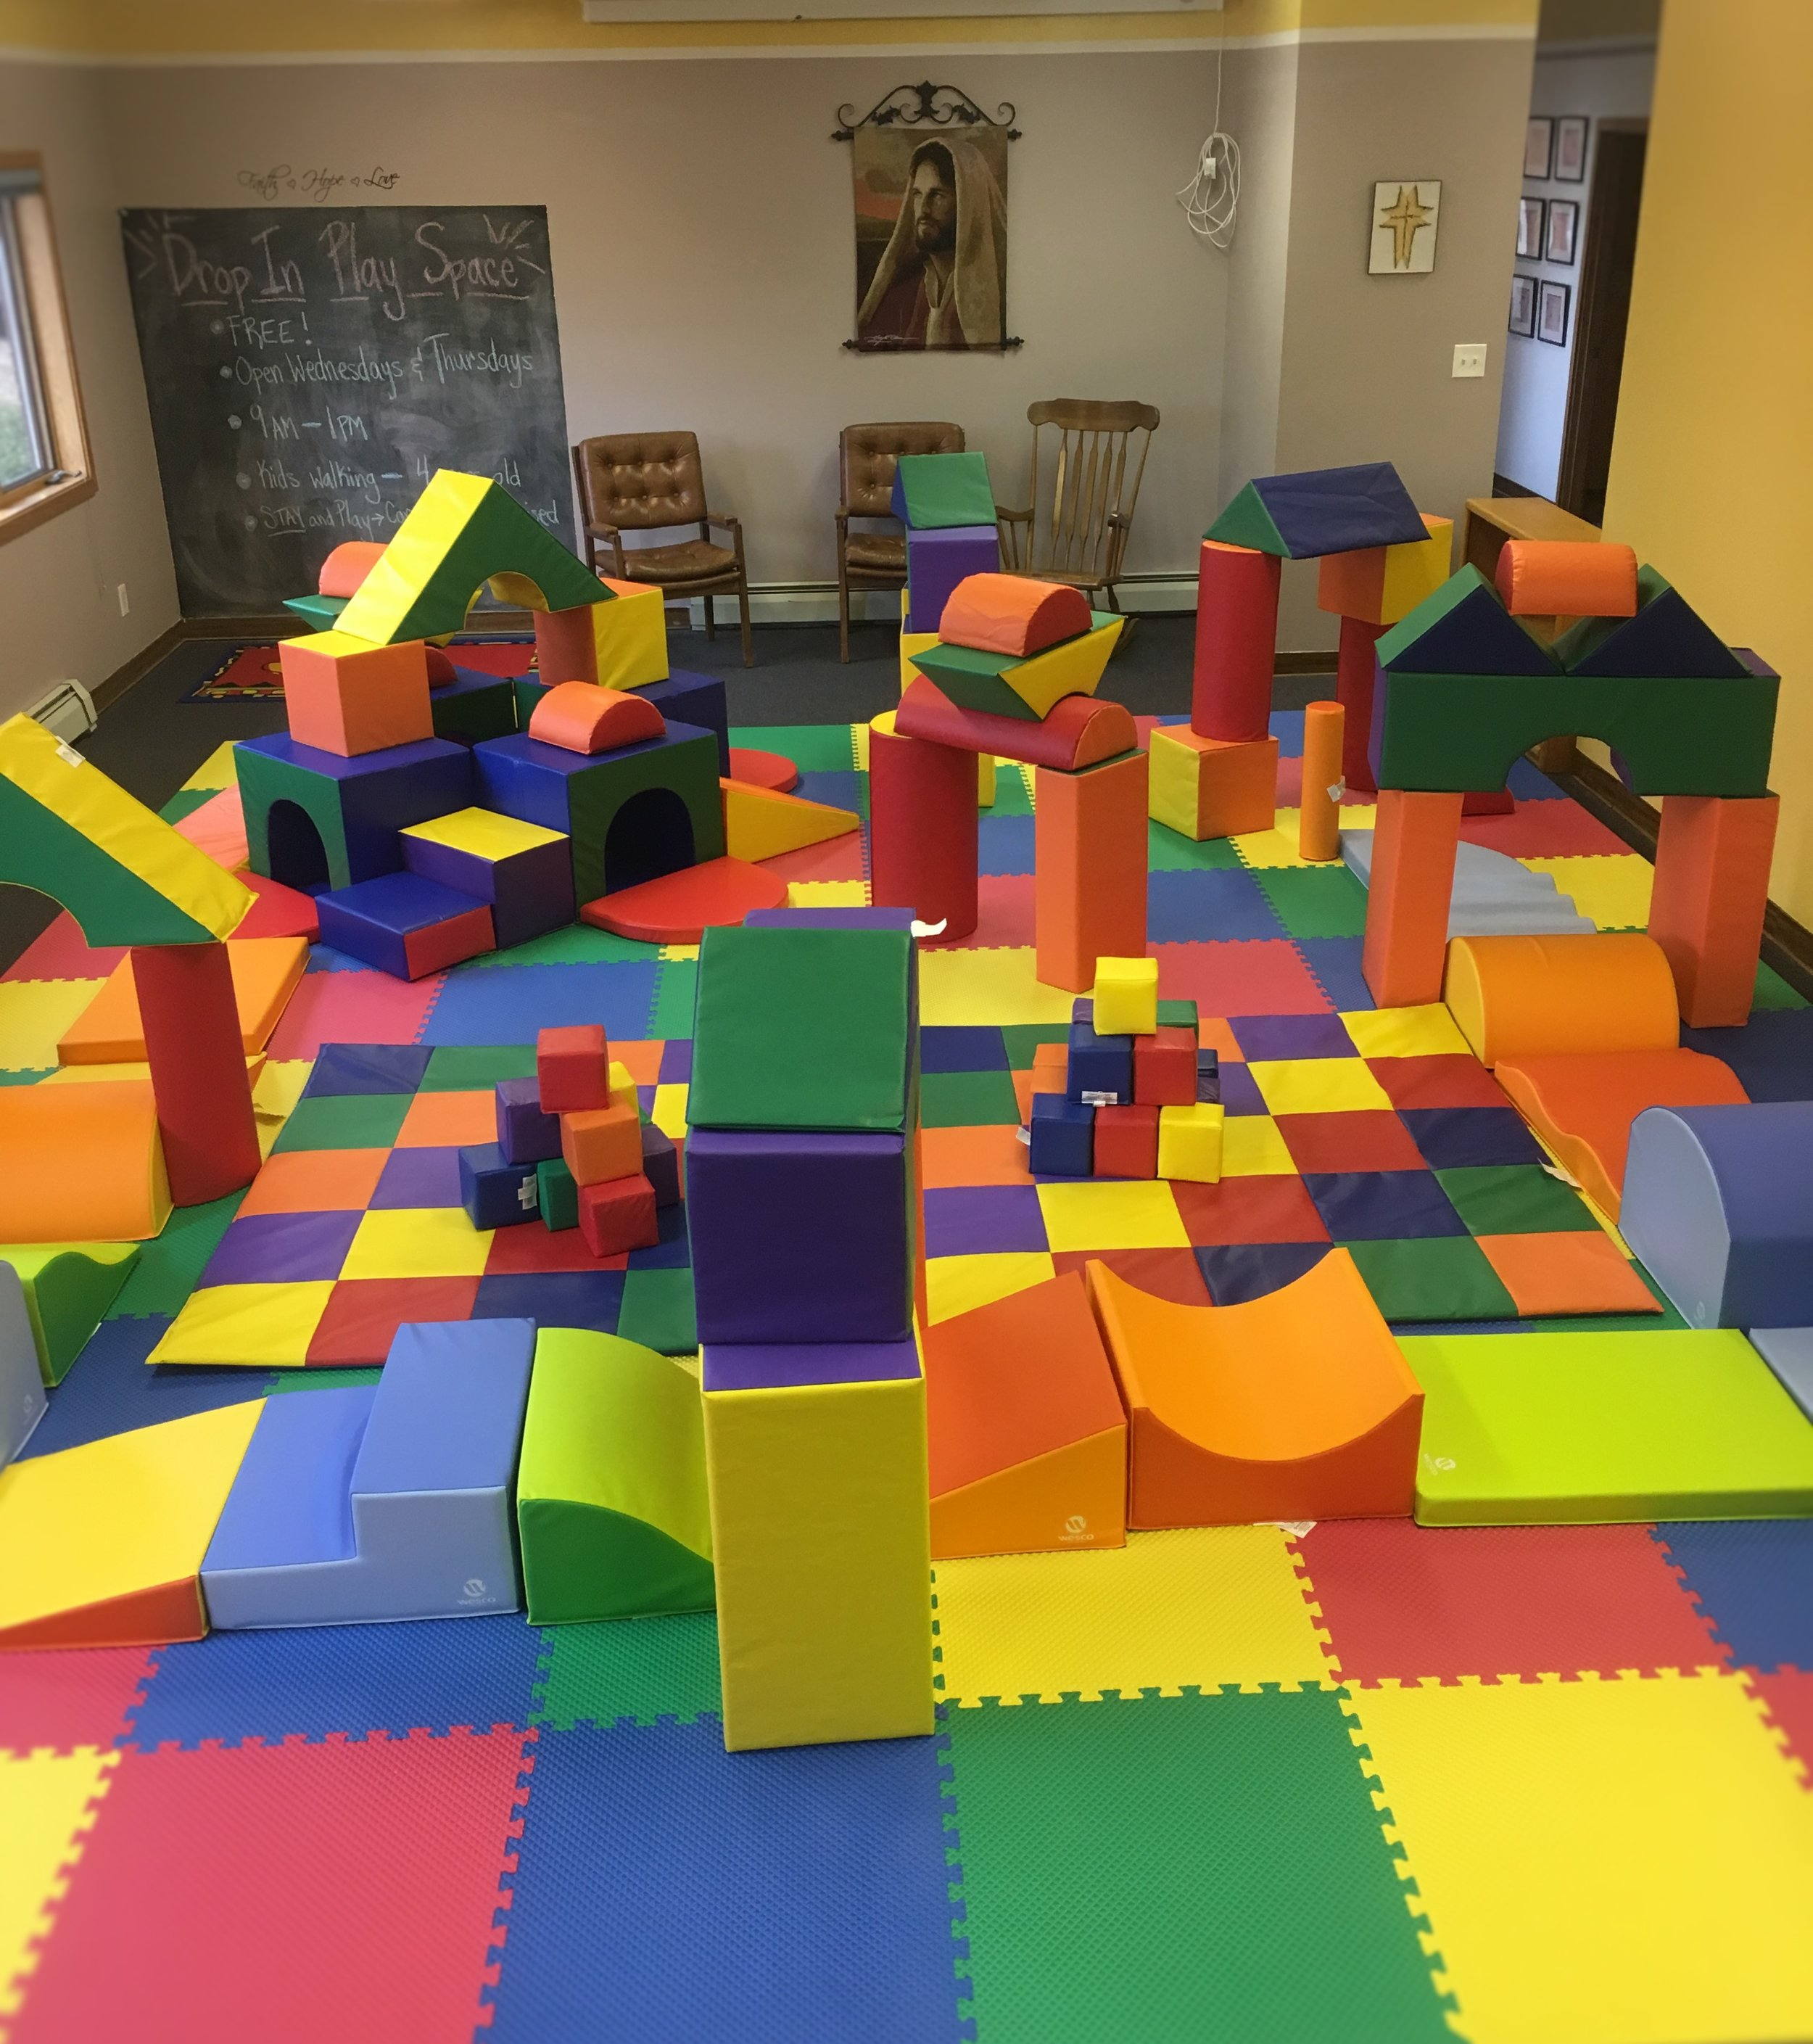 Open Wednesdays and Thursdays 9am-12pm - :: Ages Walking- 4:: Caregiver supervised: Stay and Play:: Socks must be worn by both adults and children on equipment:: Free and open to the community